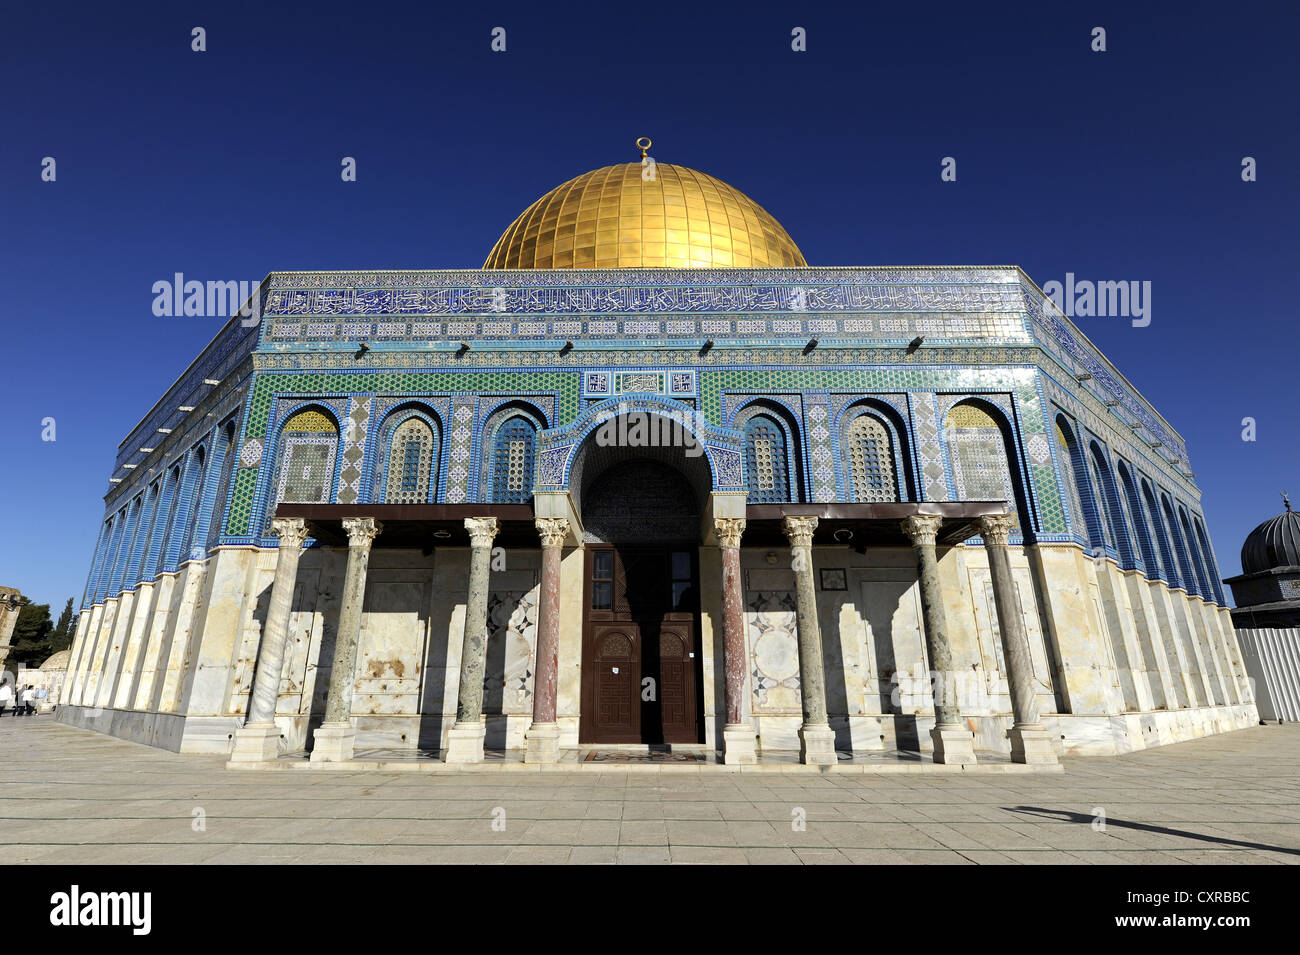 Dome of the Rock, Temple Mount, Old City, Jerusalem, Israel, Middle East, Asia Minor, Asia Stock Photo